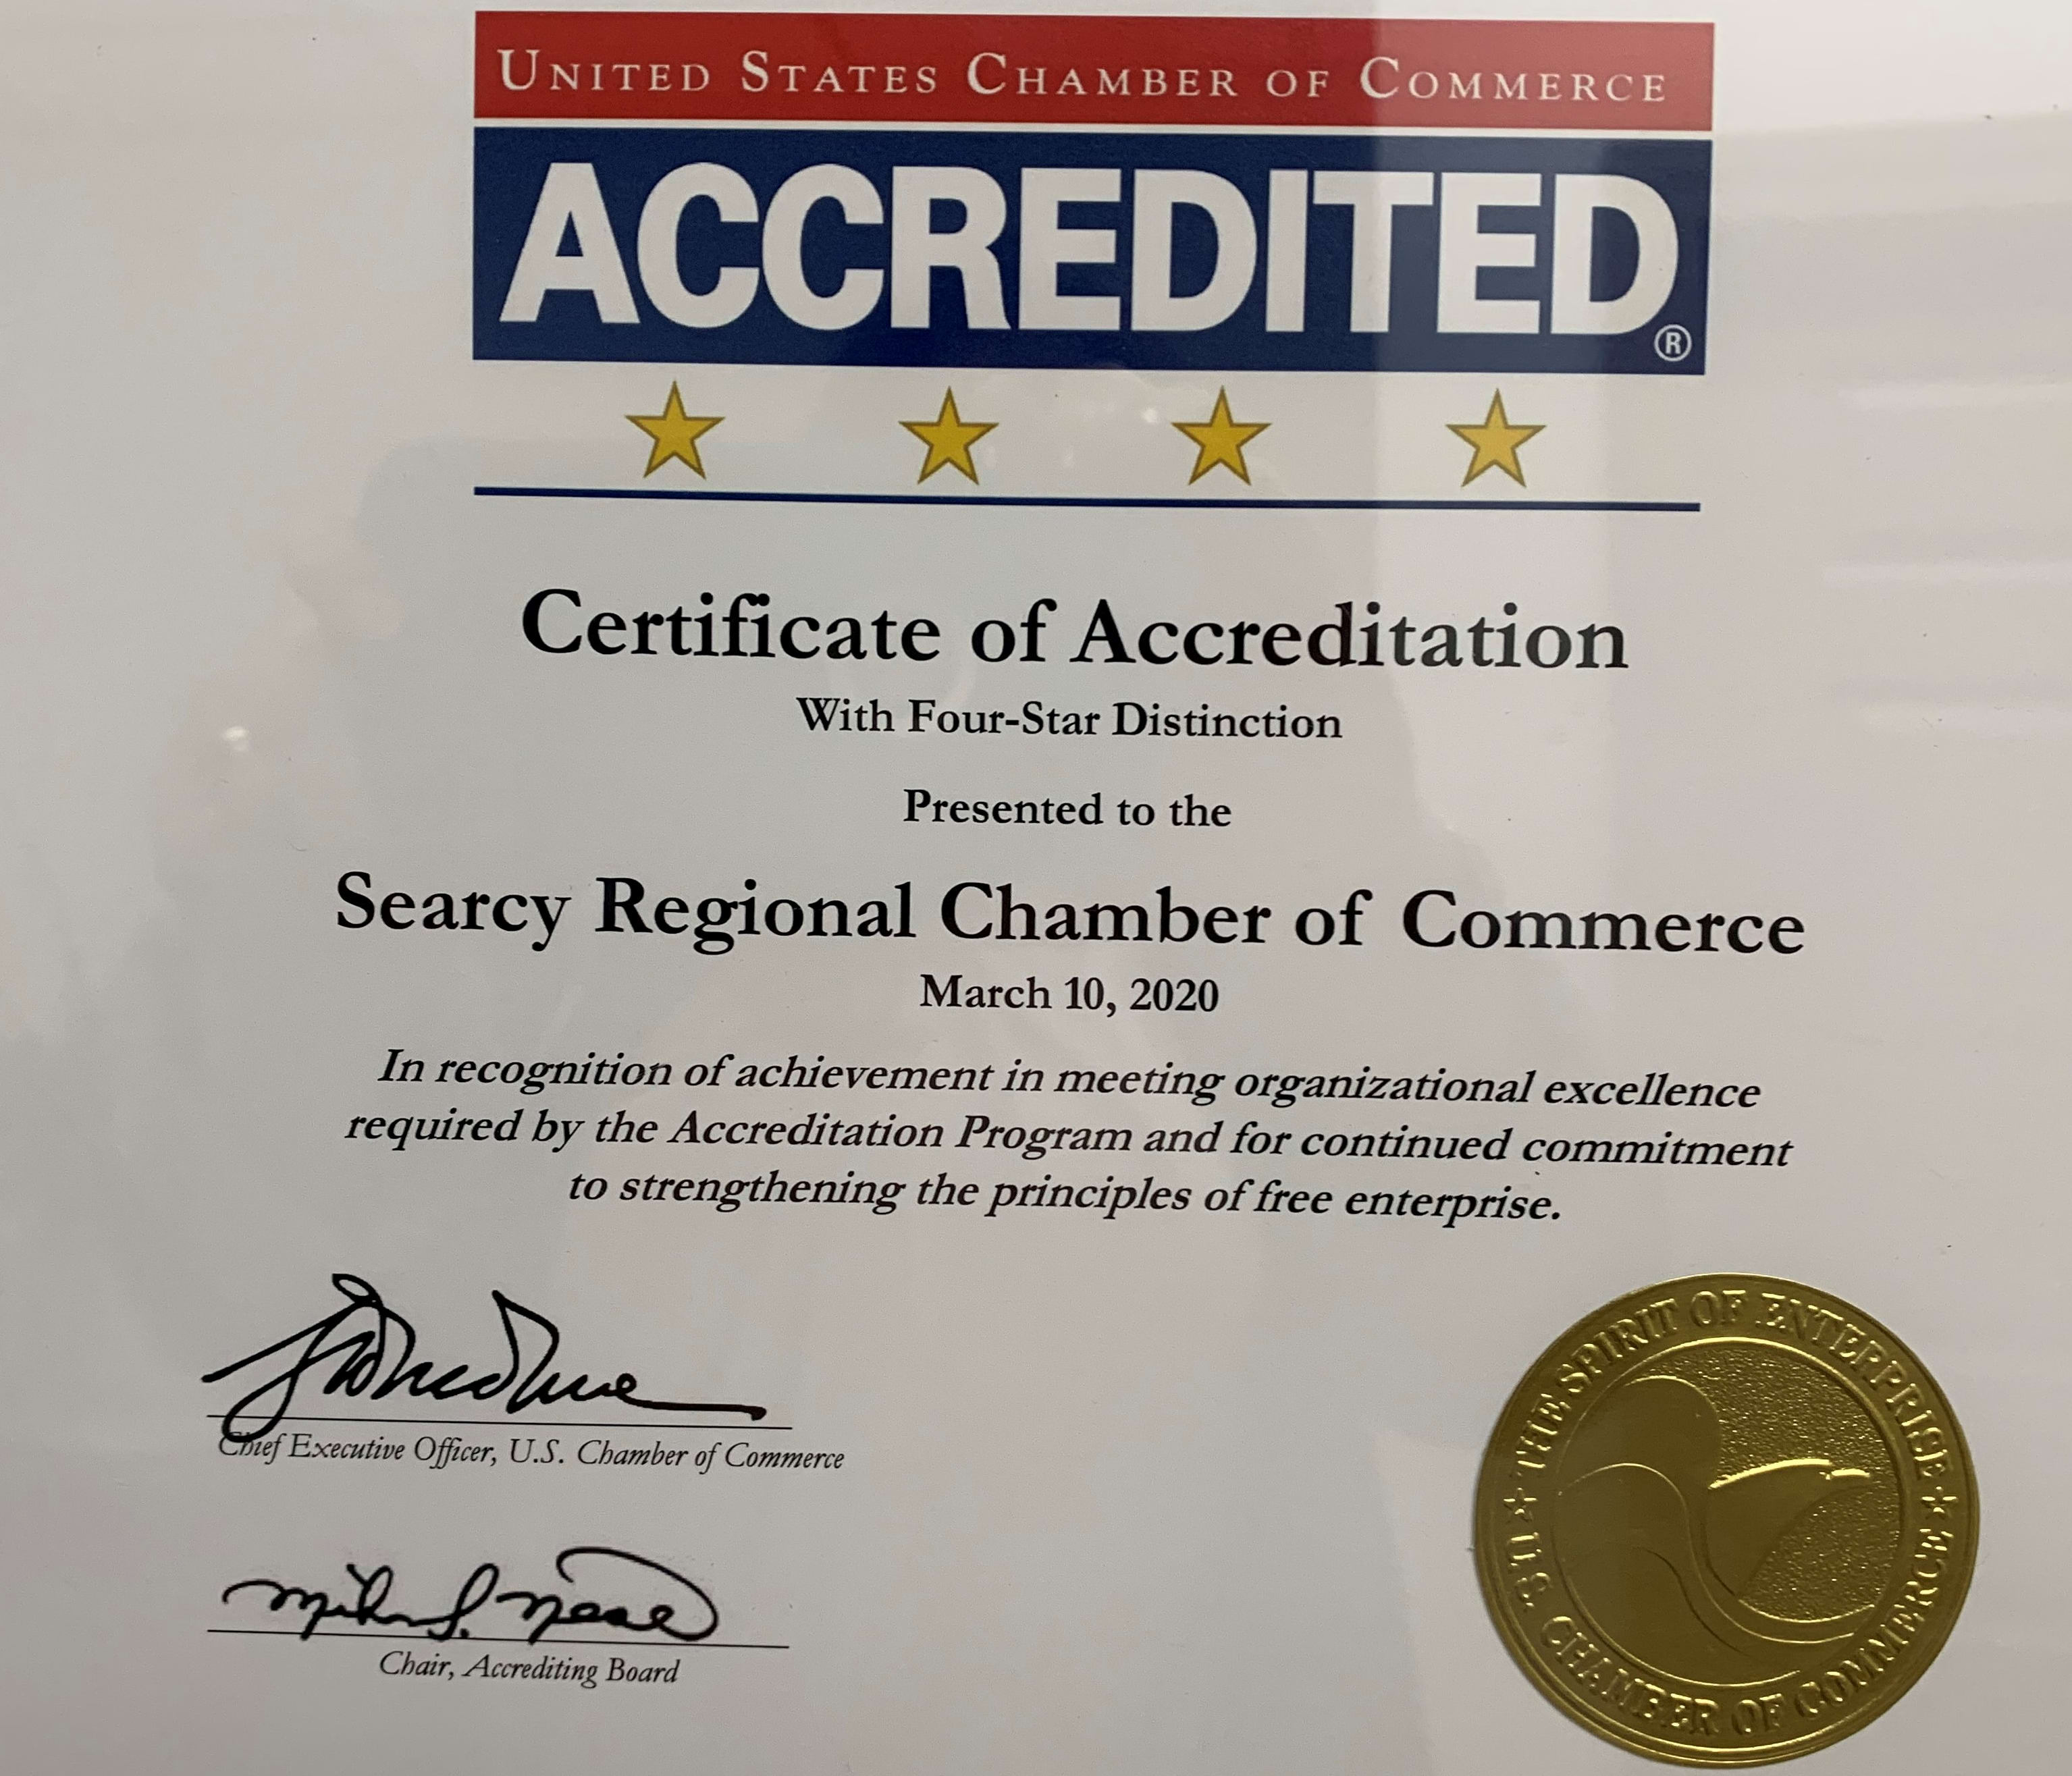 Searcy Regional Chamber of Commerce Achieves Coveted 4-Star Accreditation